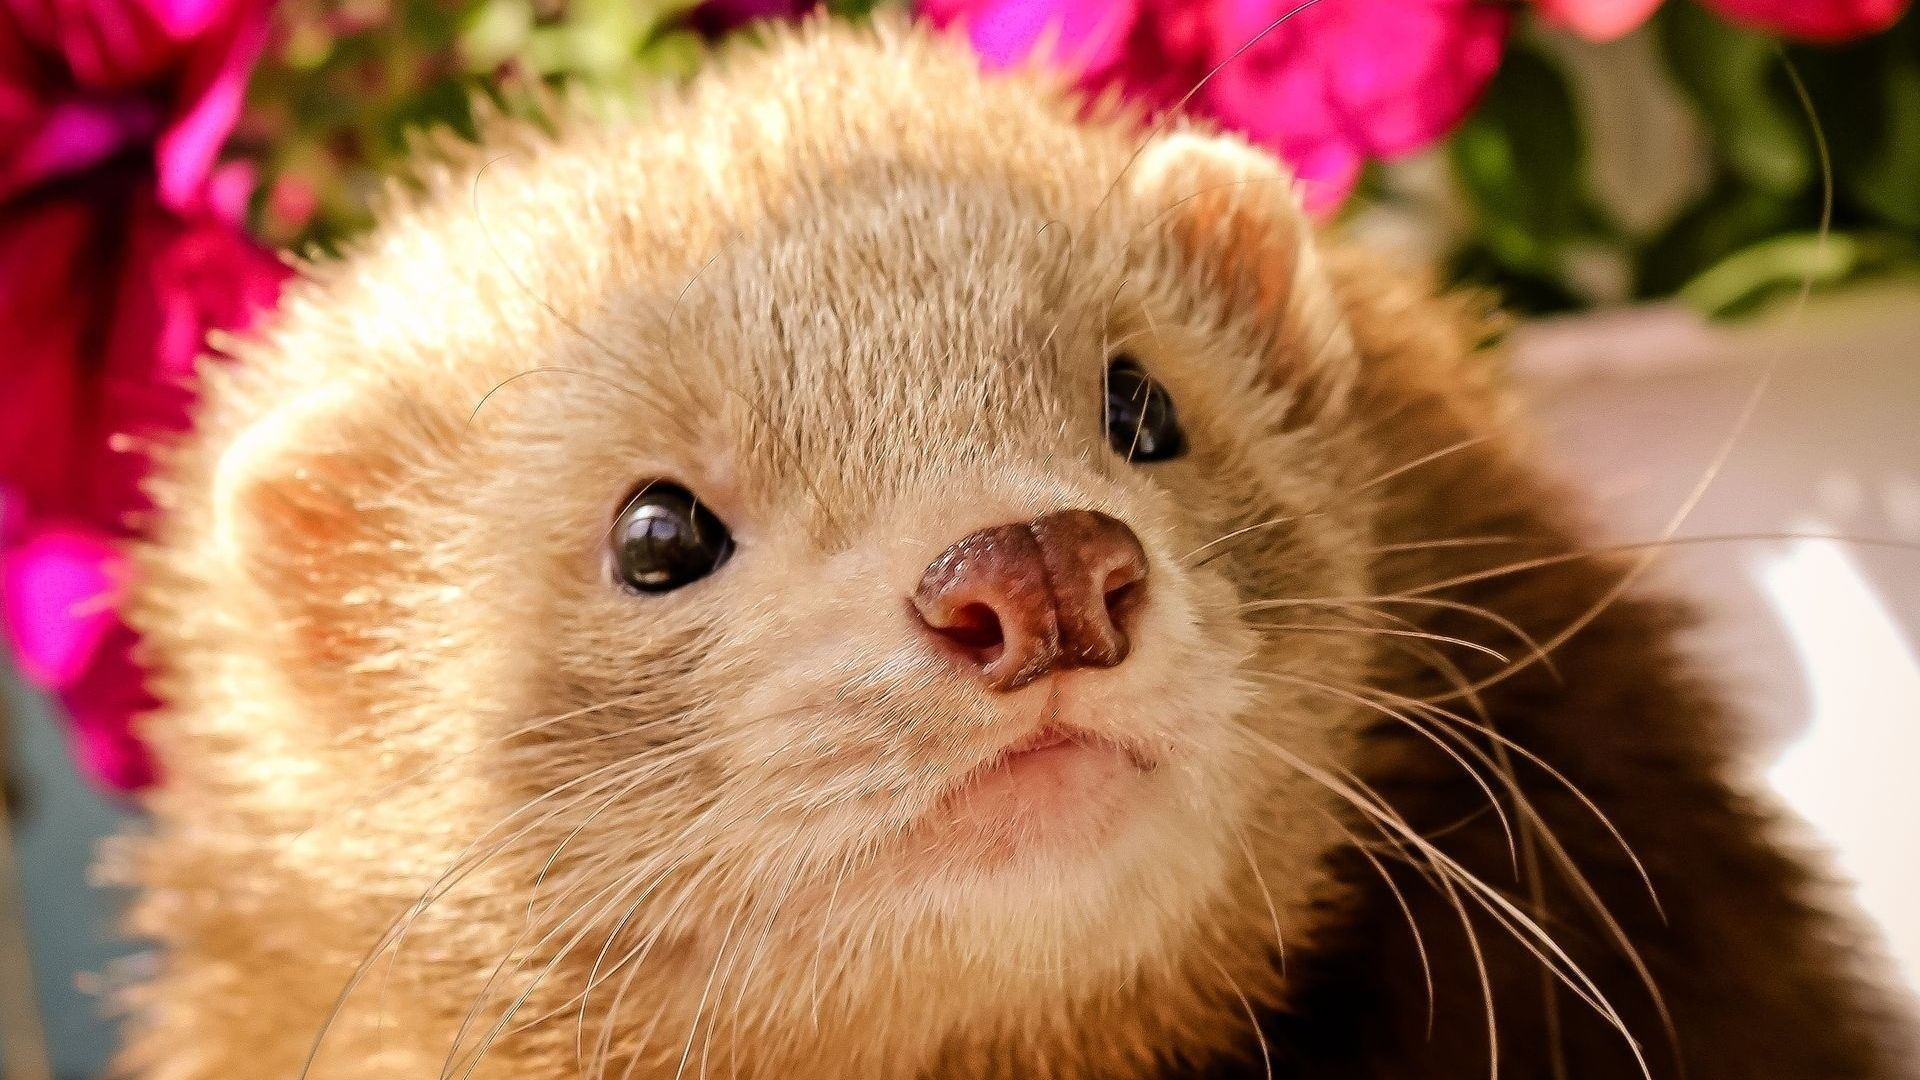 Download Wallpaper 1920x1080 Ferret Face Eyes Animal Full Hd 1080p Hd Background Animals Cute Animals Animals Are Beautiful People